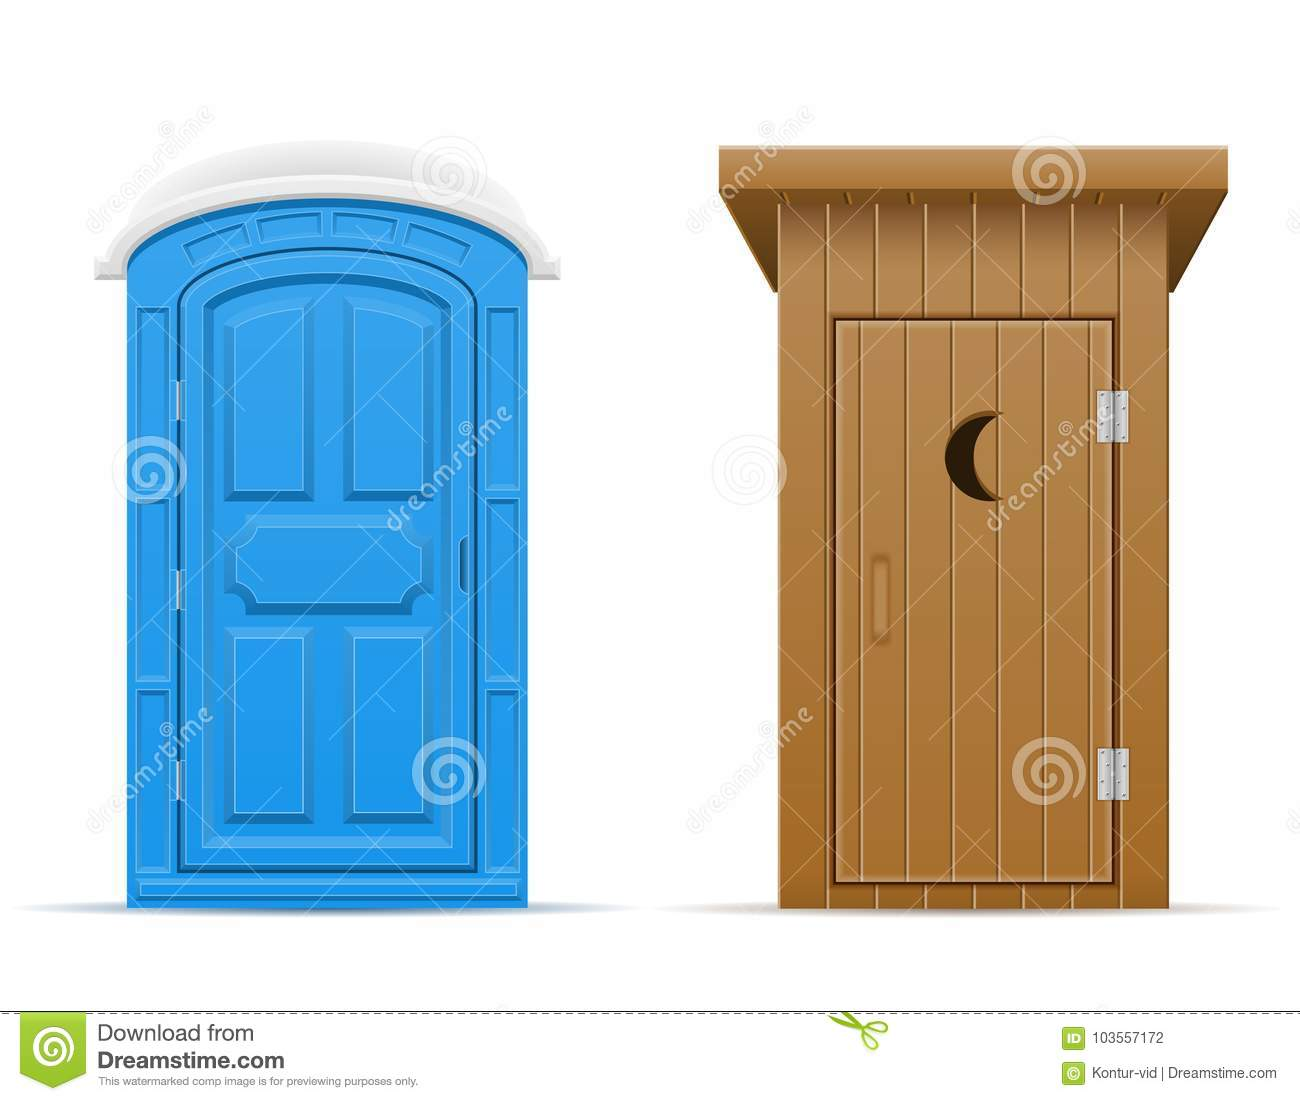 Download Bio And Wooden Outdoor Toilet Vector Illustration Stock Vector    Illustration Of Door, Lavatory